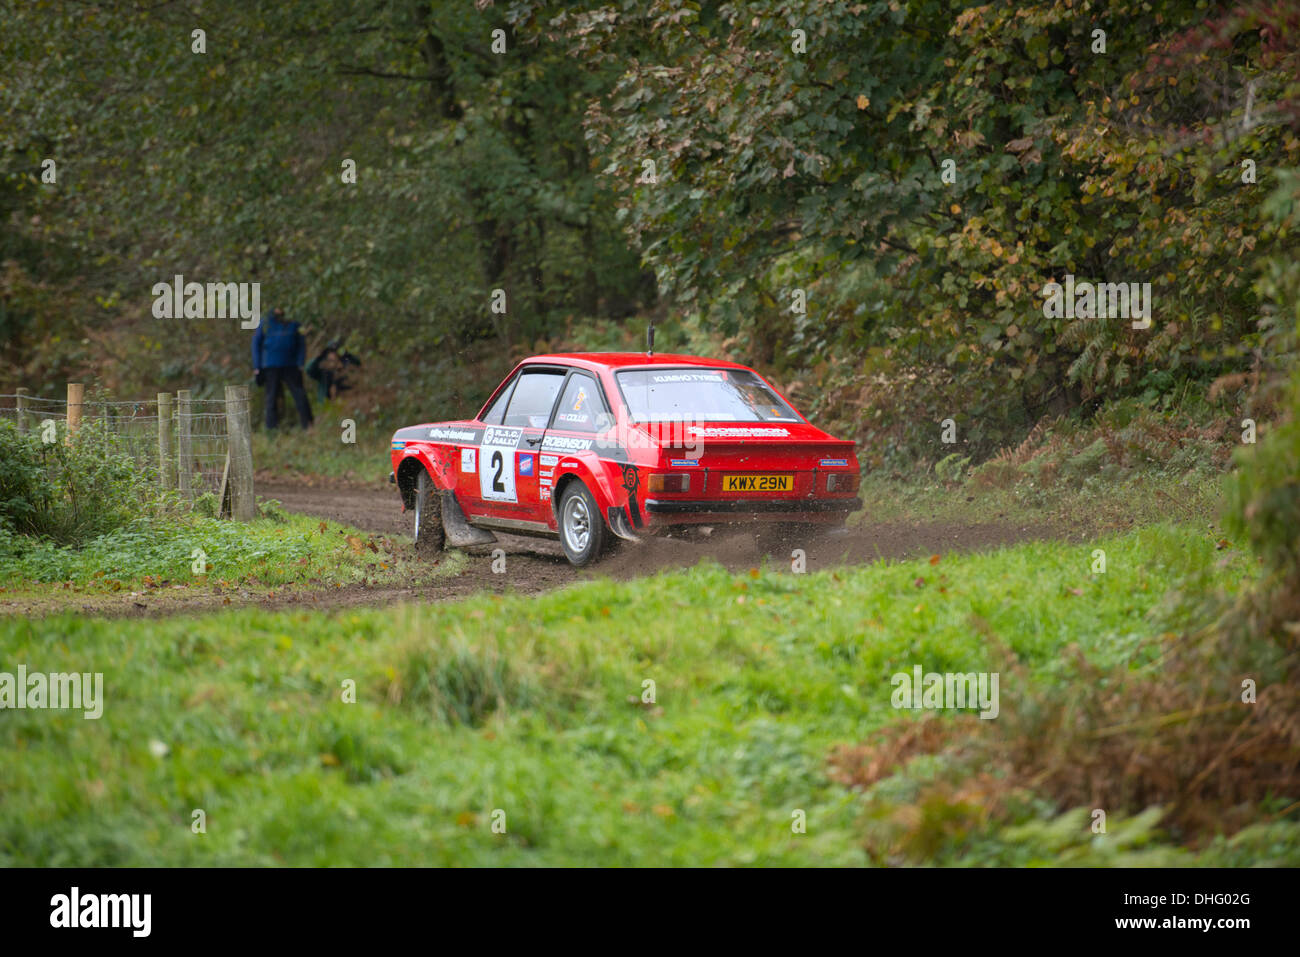 Duncombe Park, North Yorkshire, UK . 09th Nov, 2013. UK RAC Rally Duncombe Park Special Stage 8. Matthew Robinson and Sam Collis, at this point lying 2nd in class D5 (for historic cars registered be 1975 and 1981) in a Ford Escort Mk 2 Credit:  Geoff Tweddle/Alamy Live News - Stock Image